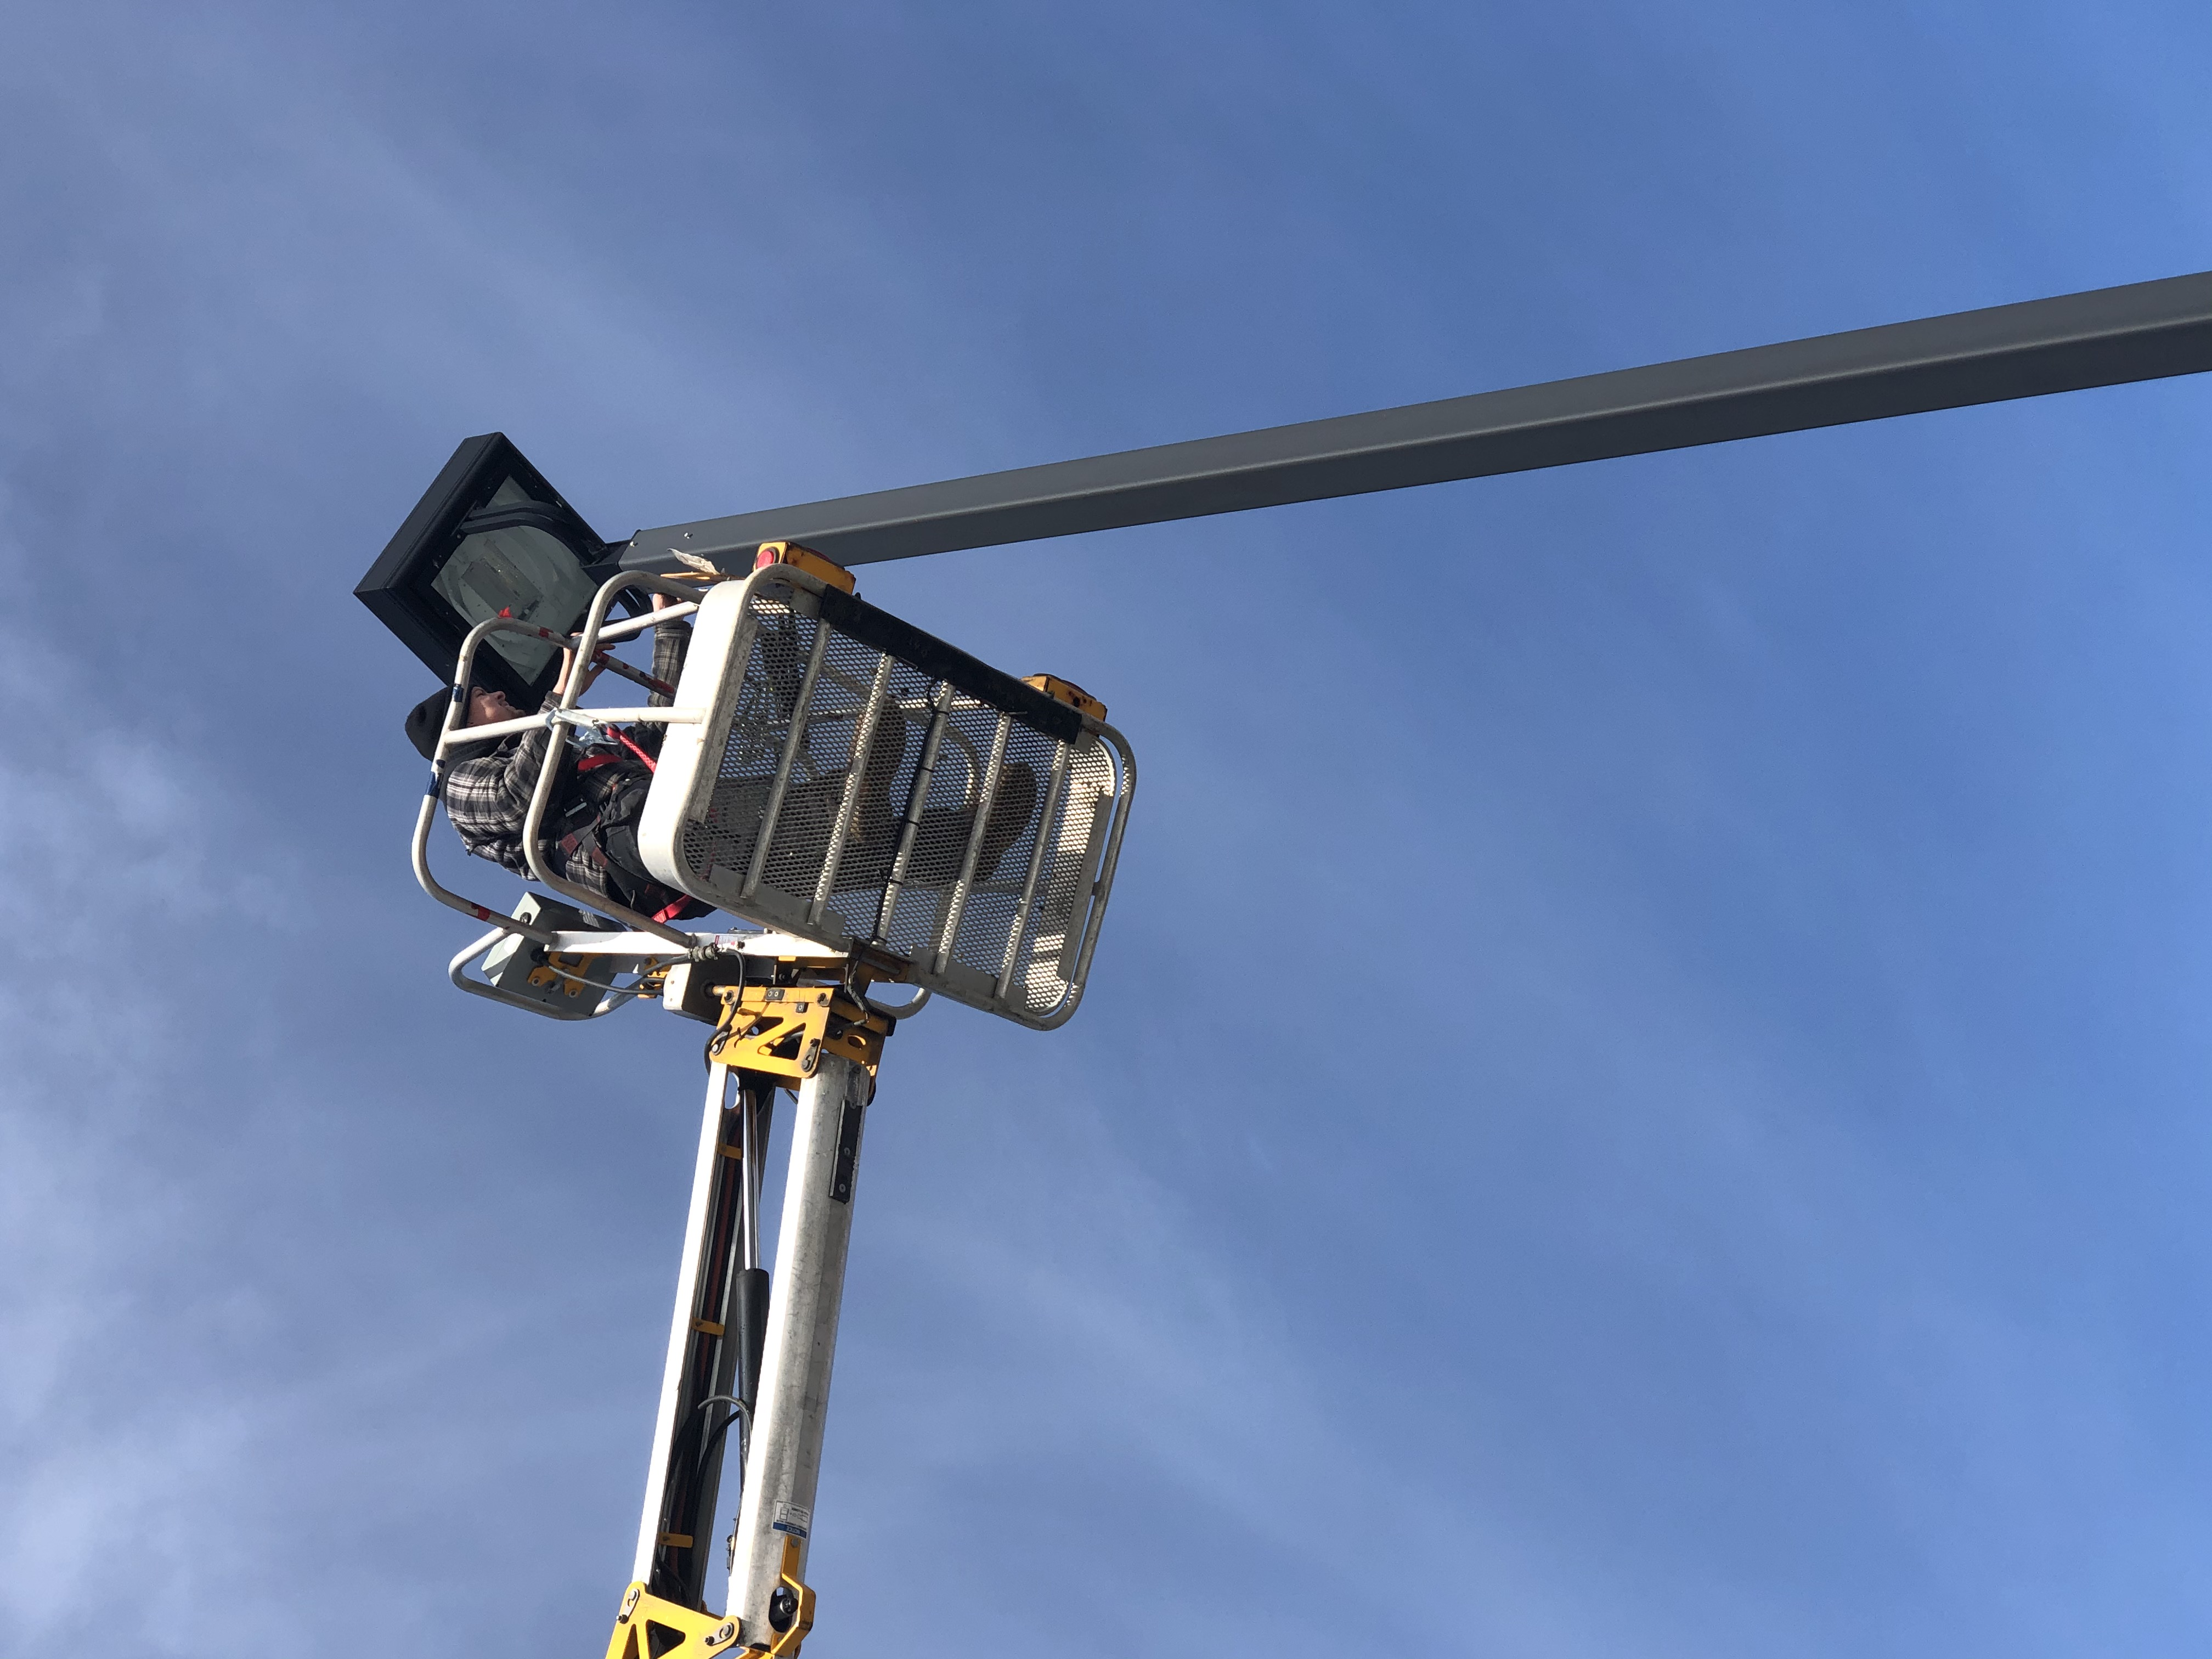 You can rely on Henderson Electrical for safe and efficient parking lot light replacement and installations.